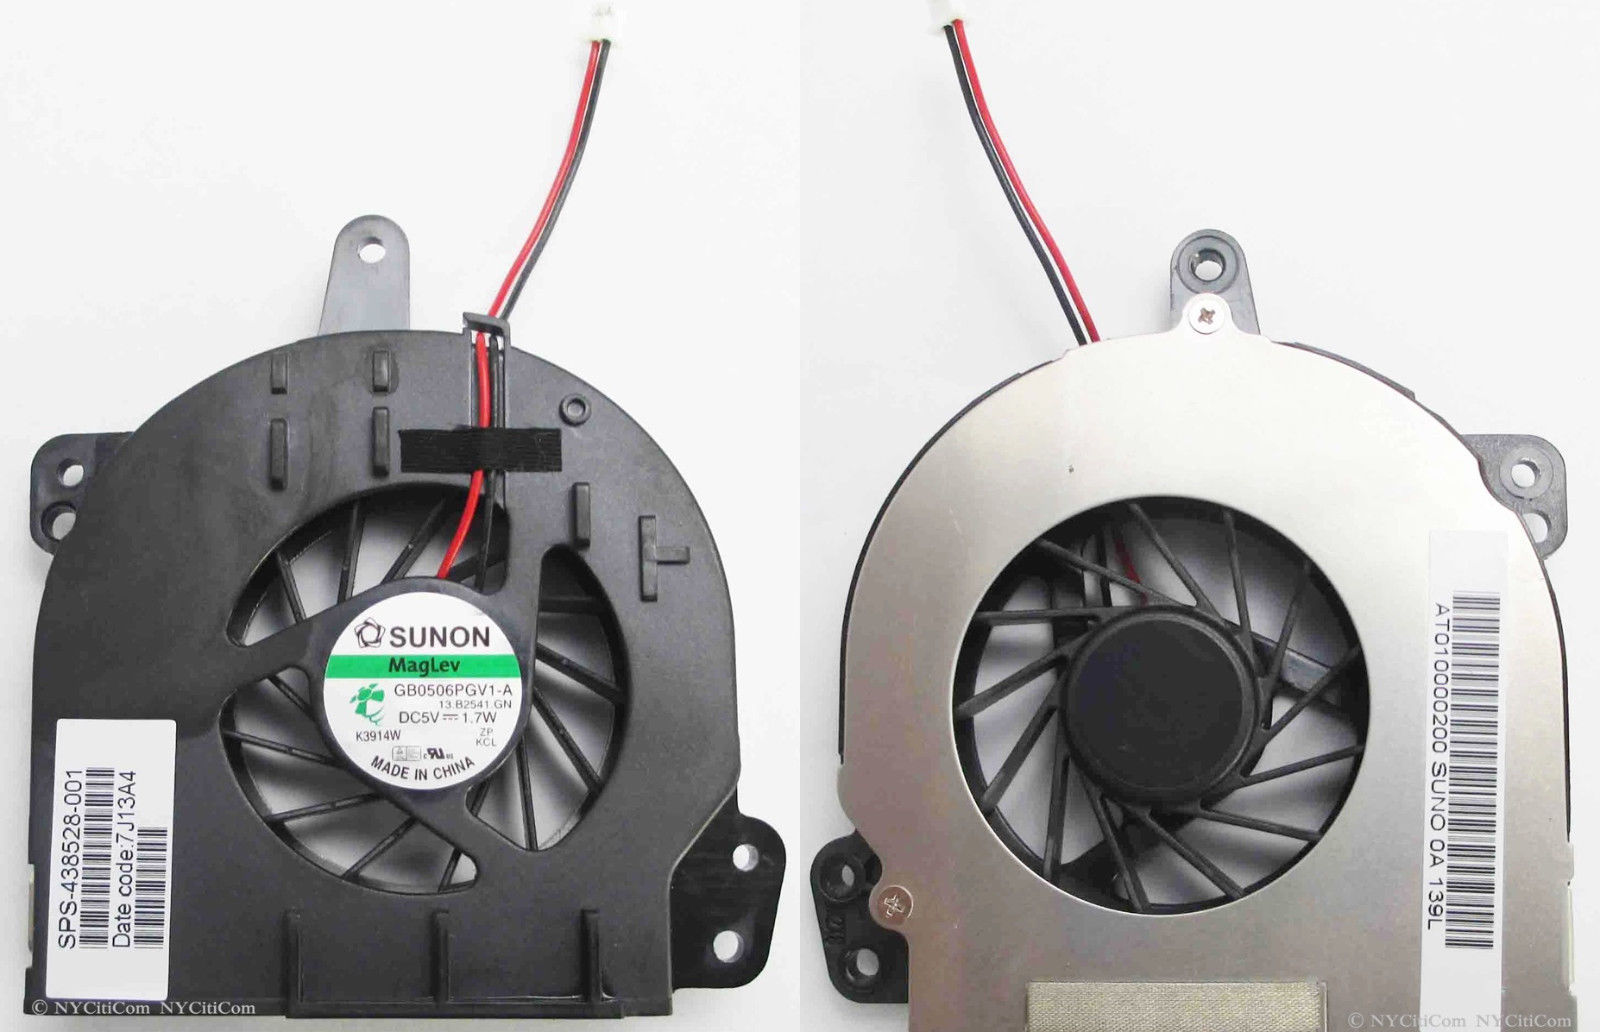 New CPU Cooler Fan For HP 500 510 520 530 540 P/N GB0506PGV1-A 13.B2541.GN 1.7W